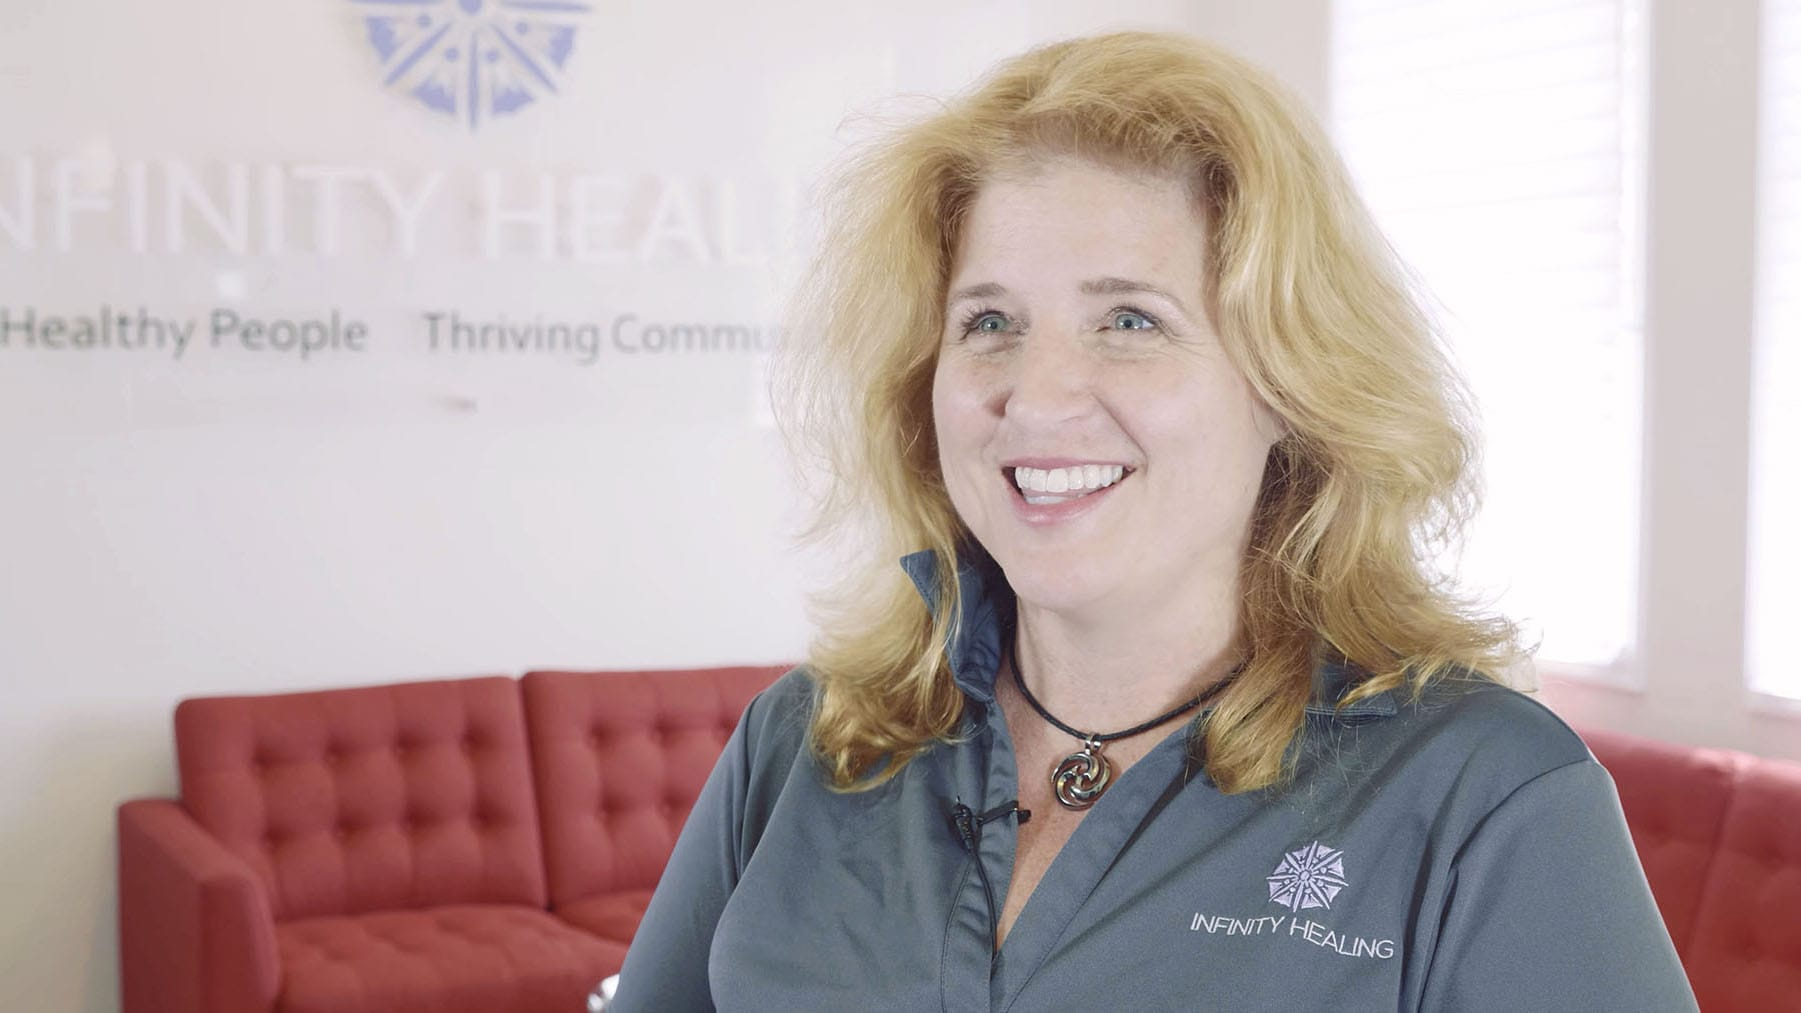 Maryellen Ammons of Infinity Healing talks about using the NovoTHOR